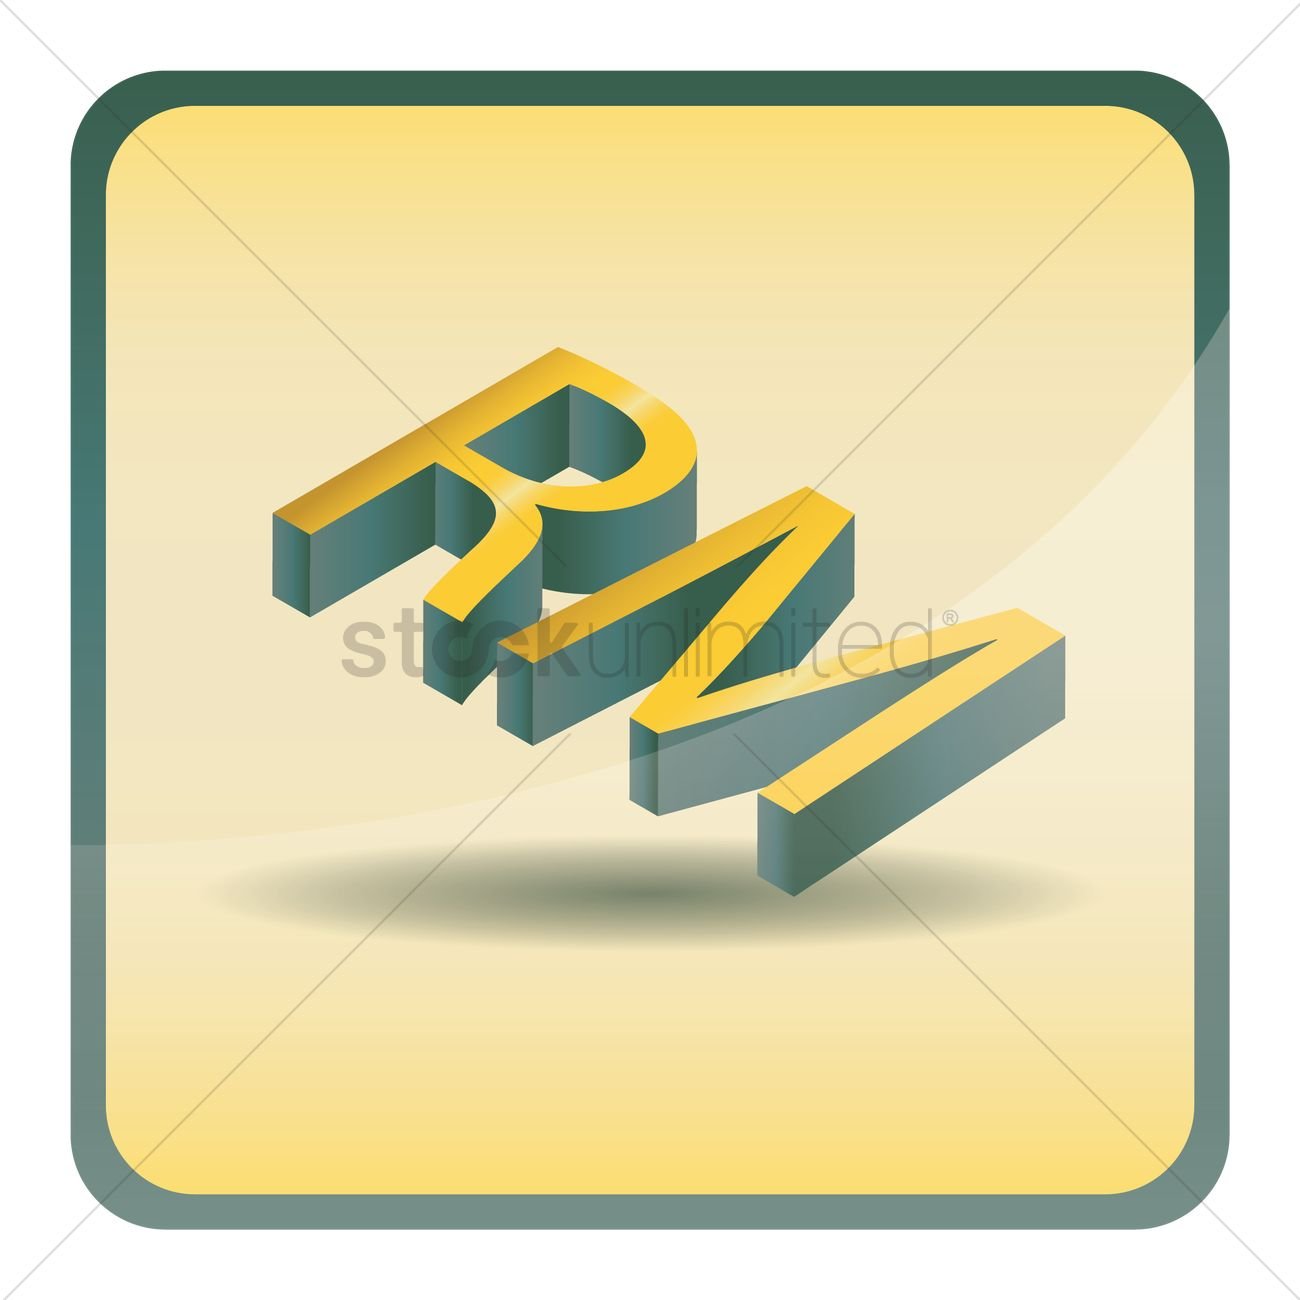 Malaysian Ringgit Currency Vector Image 1631124 Stockunlimited